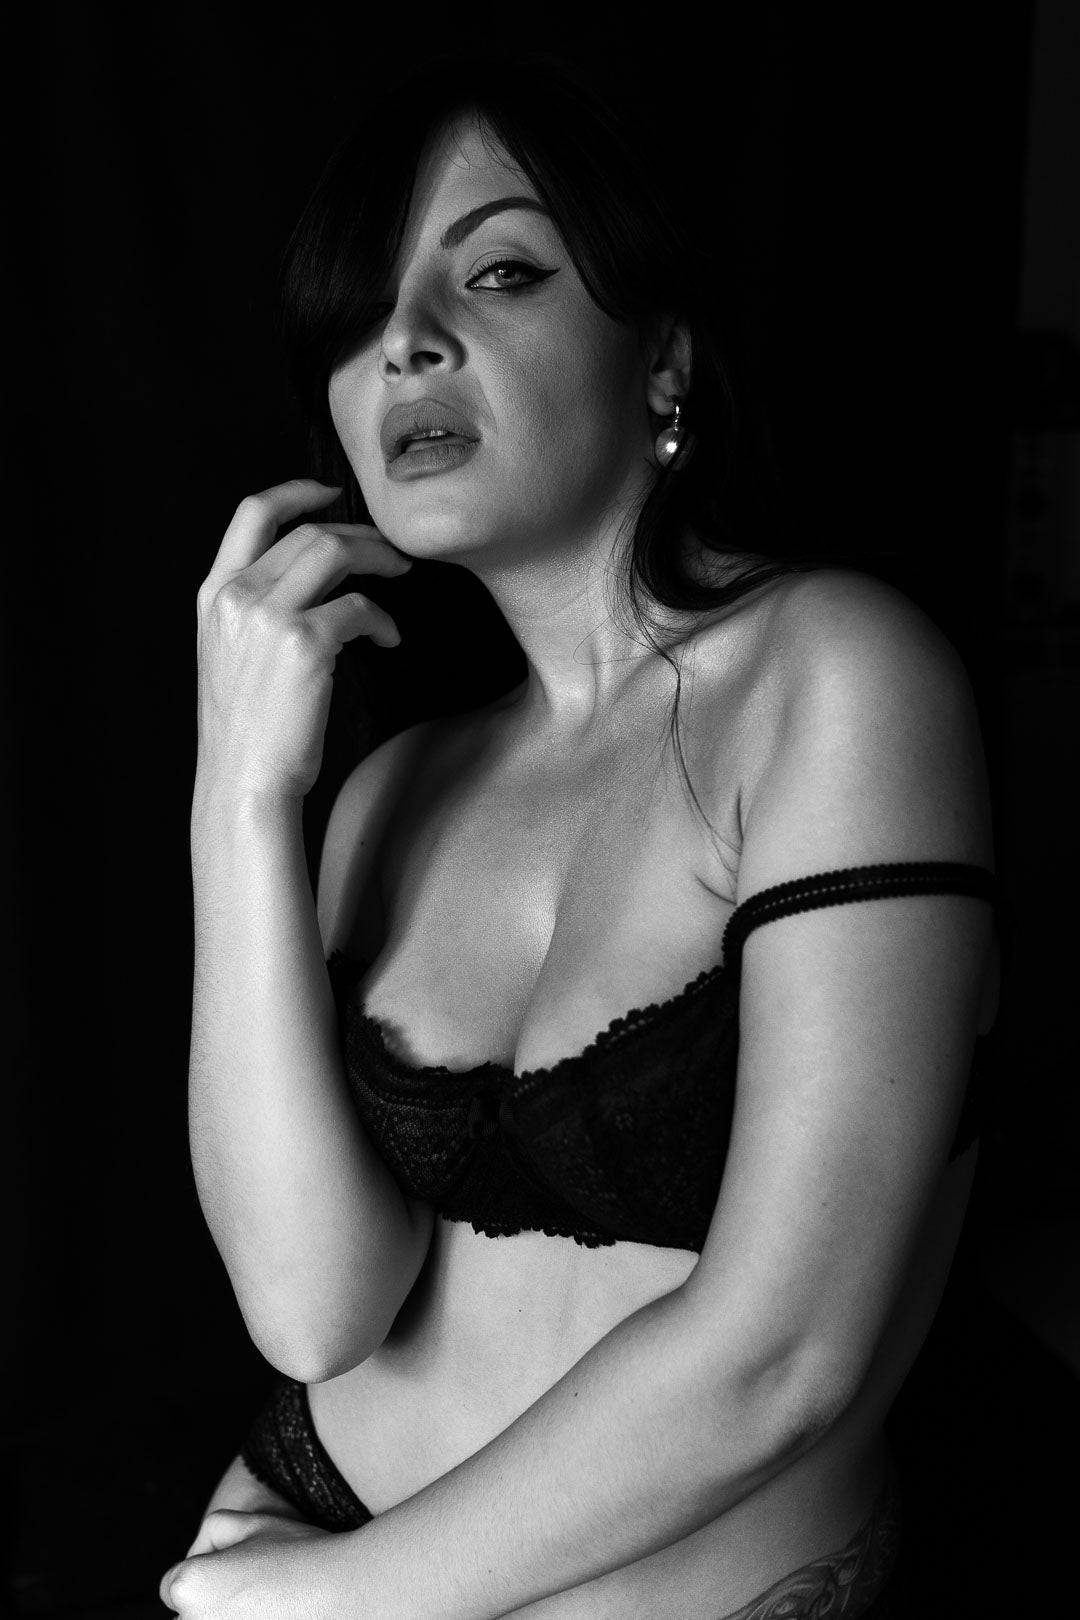 Black and white portrait of a woman in lingerie